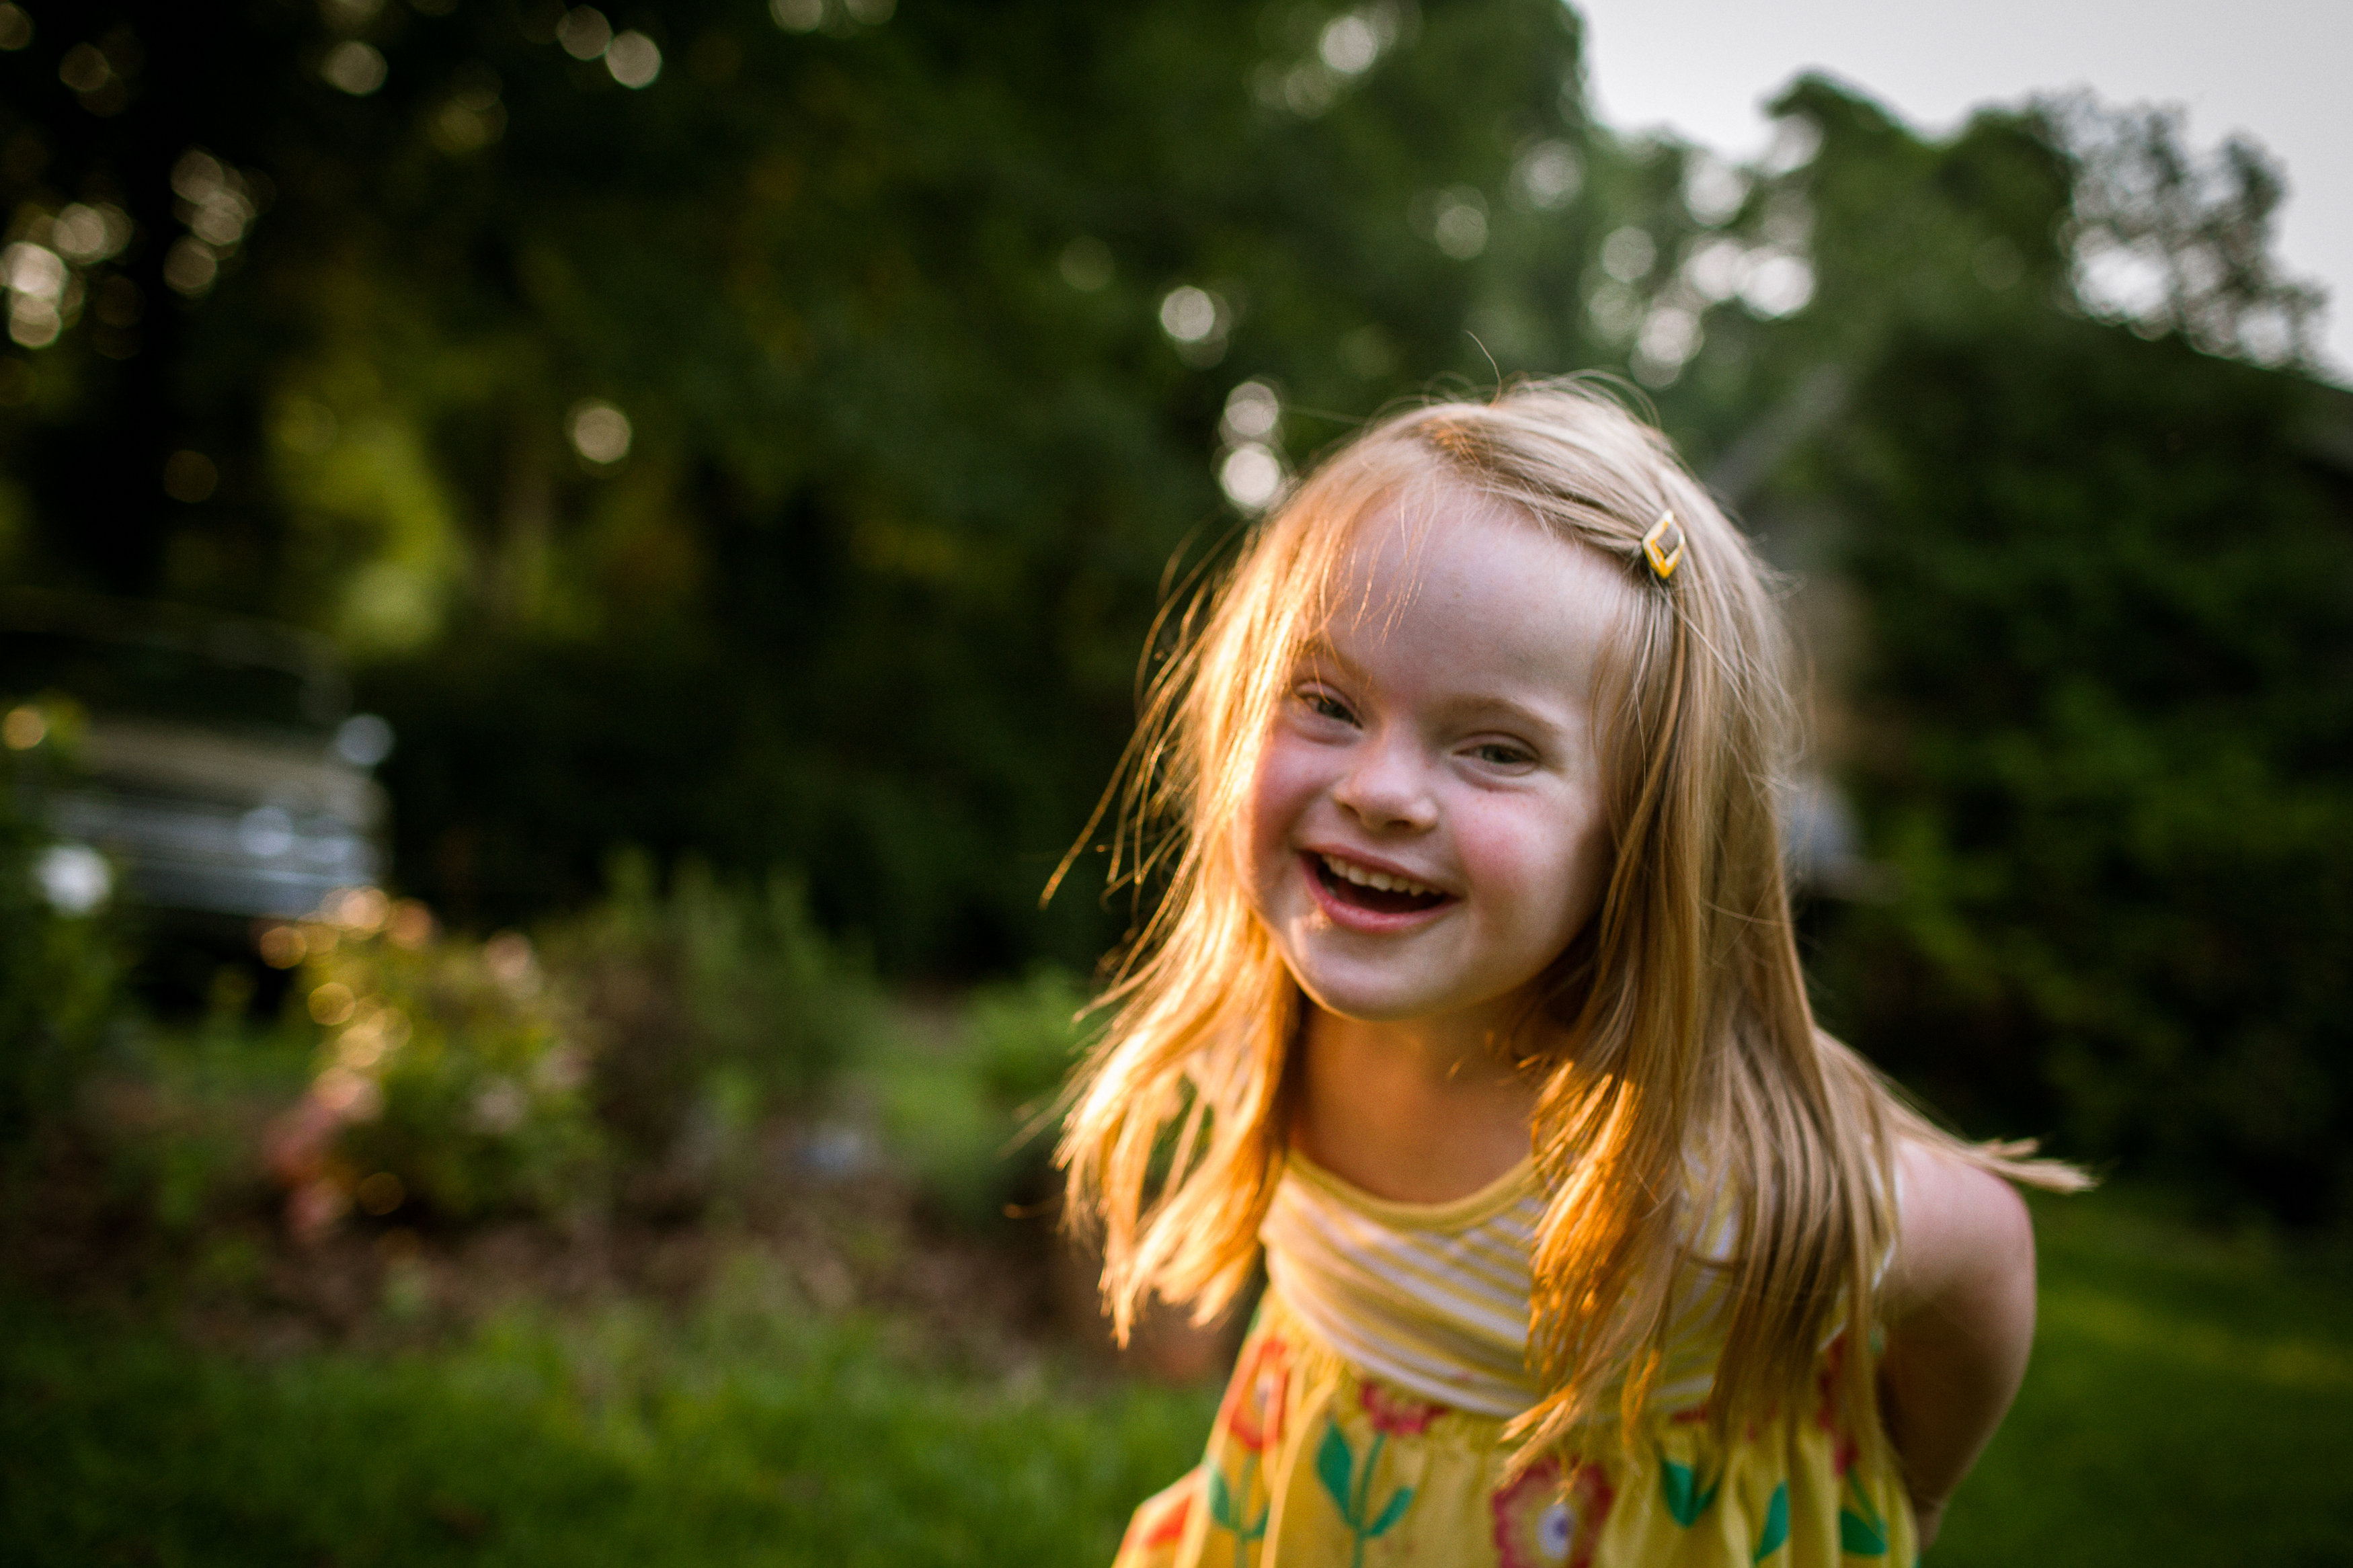 photography ordinary afters view more mollyflanaganphotography pass us starkey family it s down syndrome